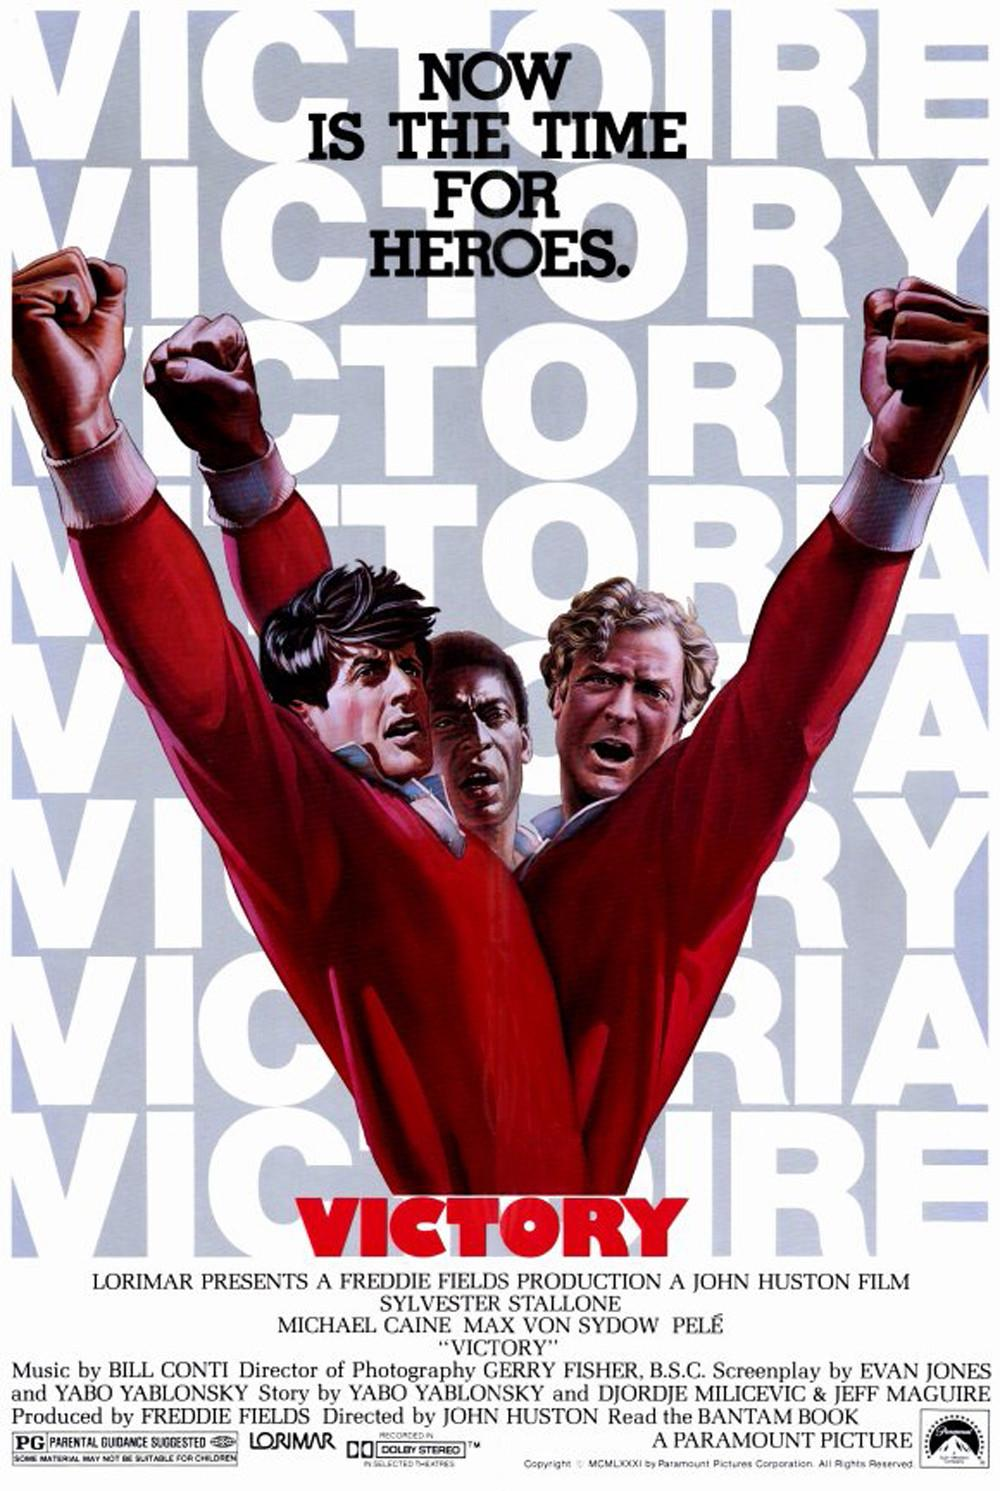 Sylvester Stallone, Michael Caine, and Pelé in Victory (1981)